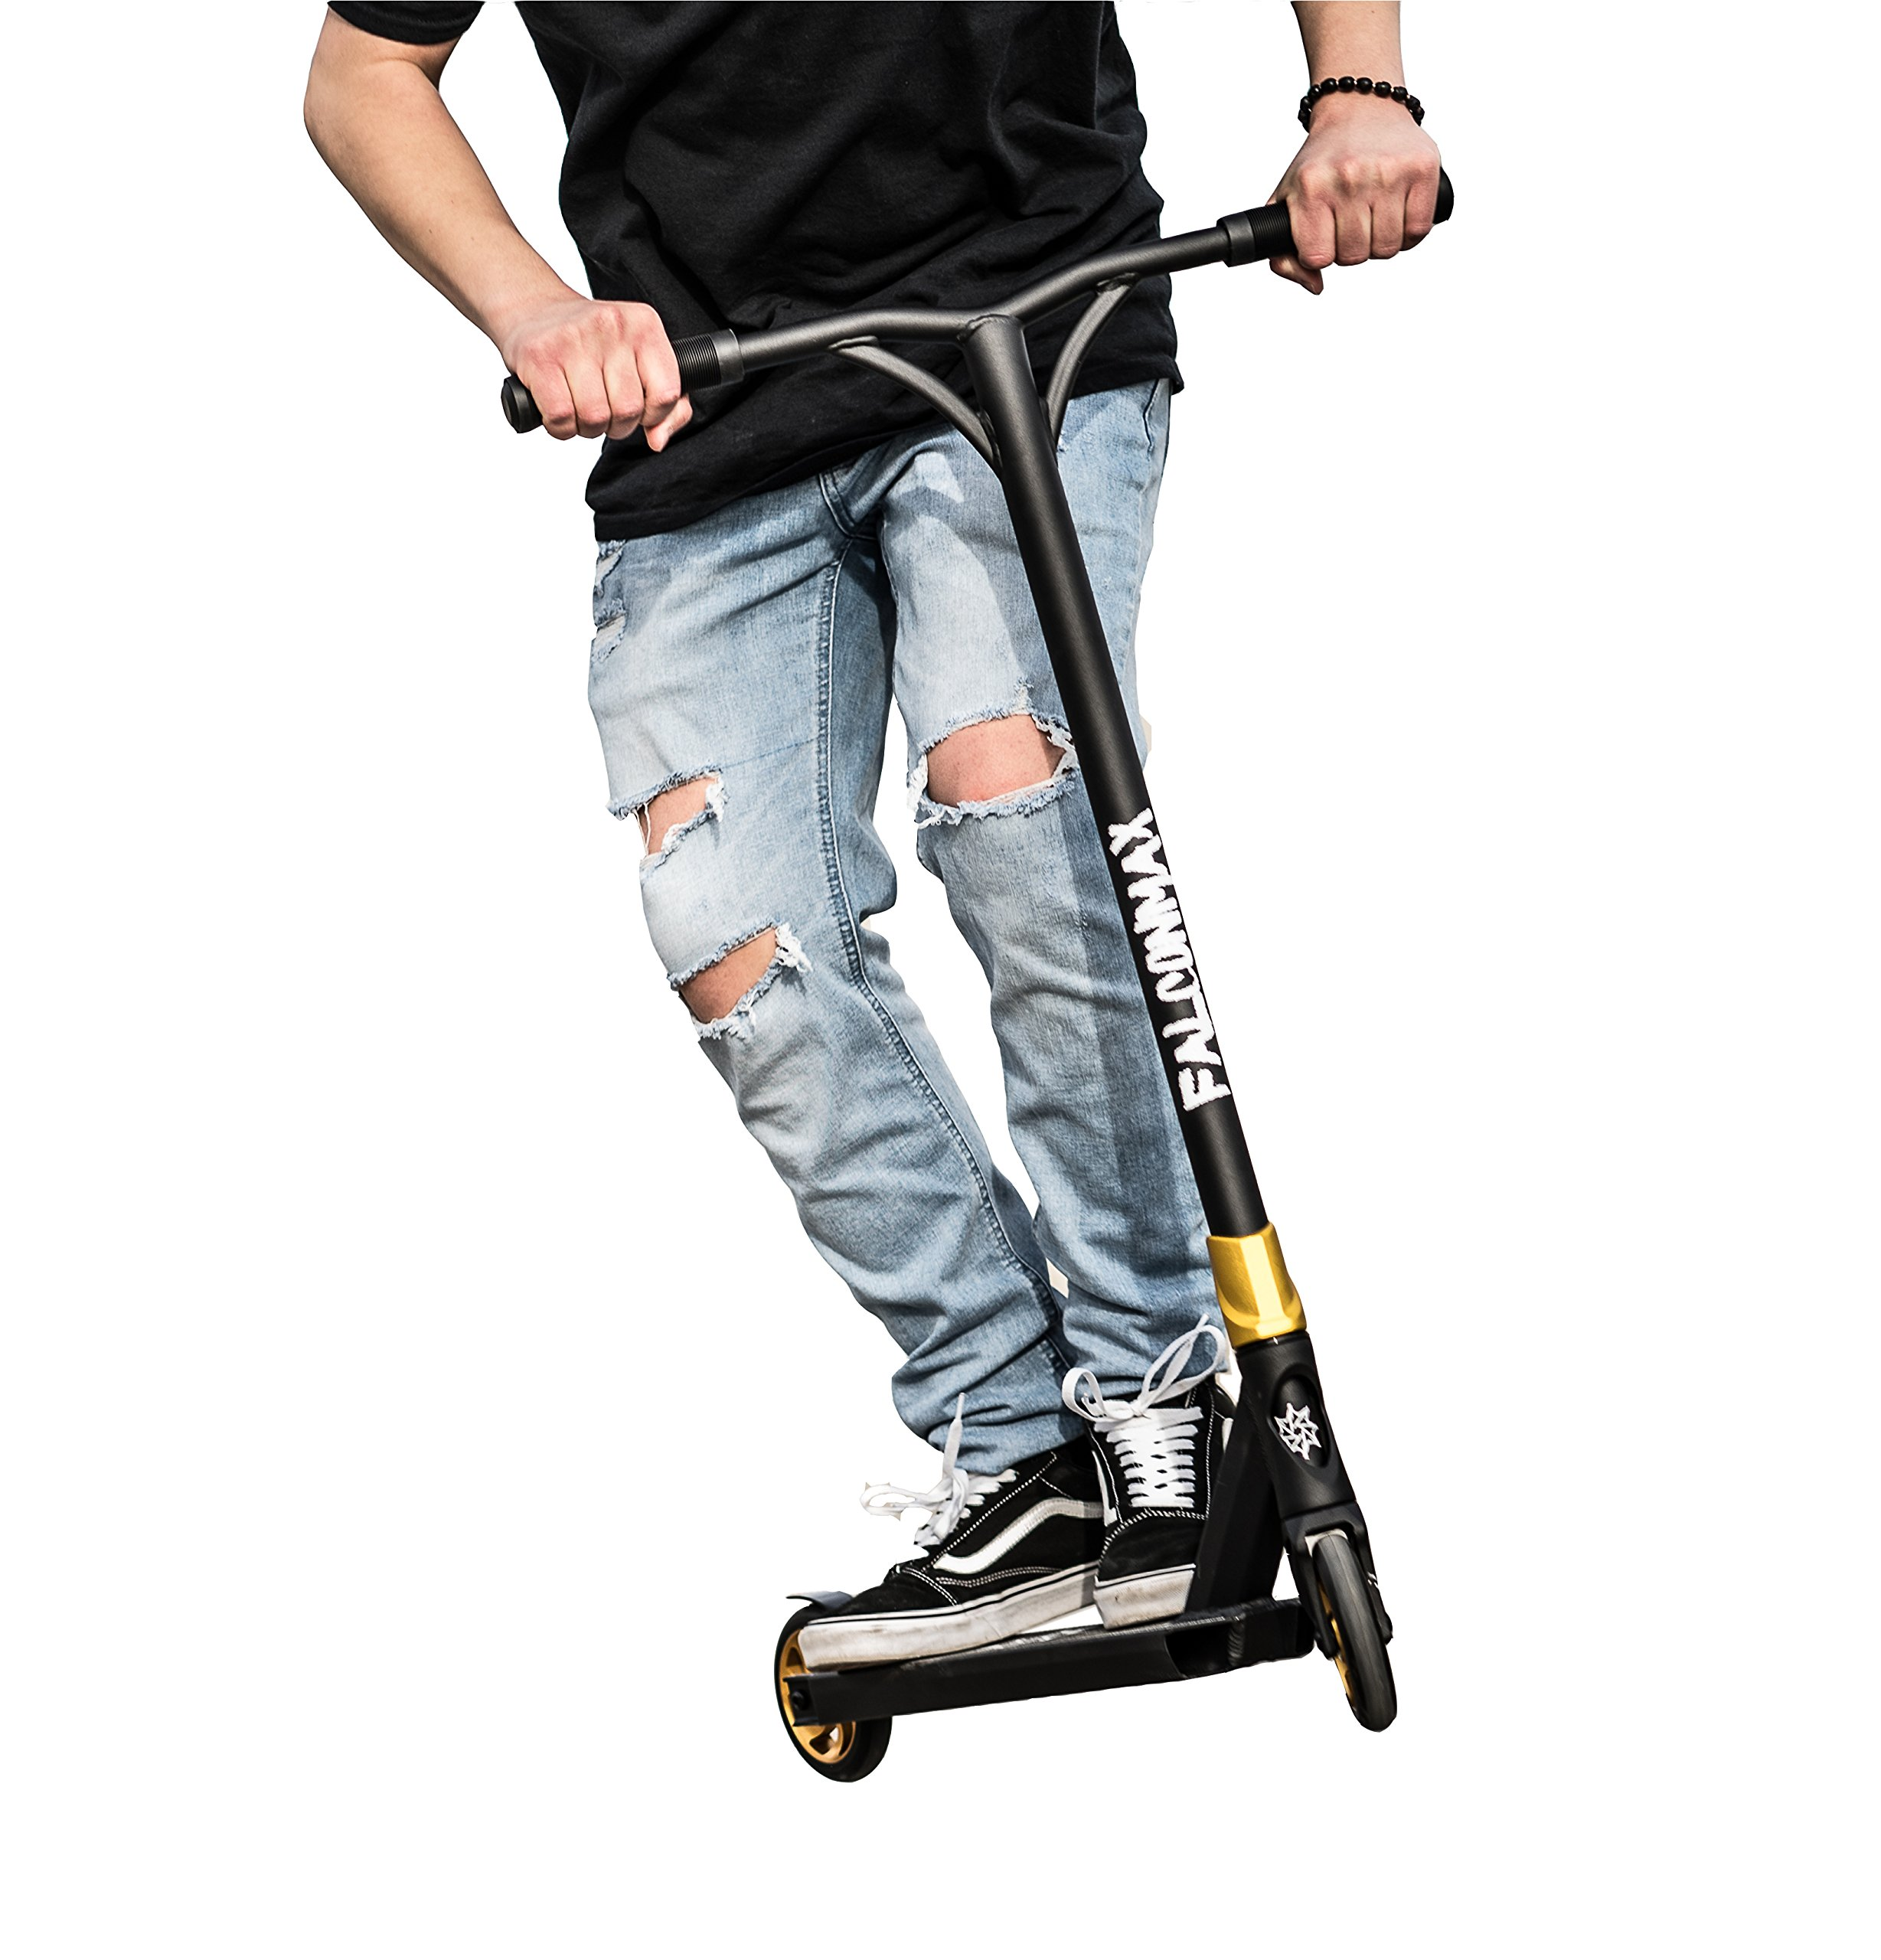 Pro Trick Scooter for Beginner Kids To Advanced Adults | Freestyle BMX Stunt Scooter | Wheels For Any Terrain| Lightweight and Reinforced Deck with Ultra-Grip Tap | Handlebars with TPR Fasen Grips by INDUXPERT